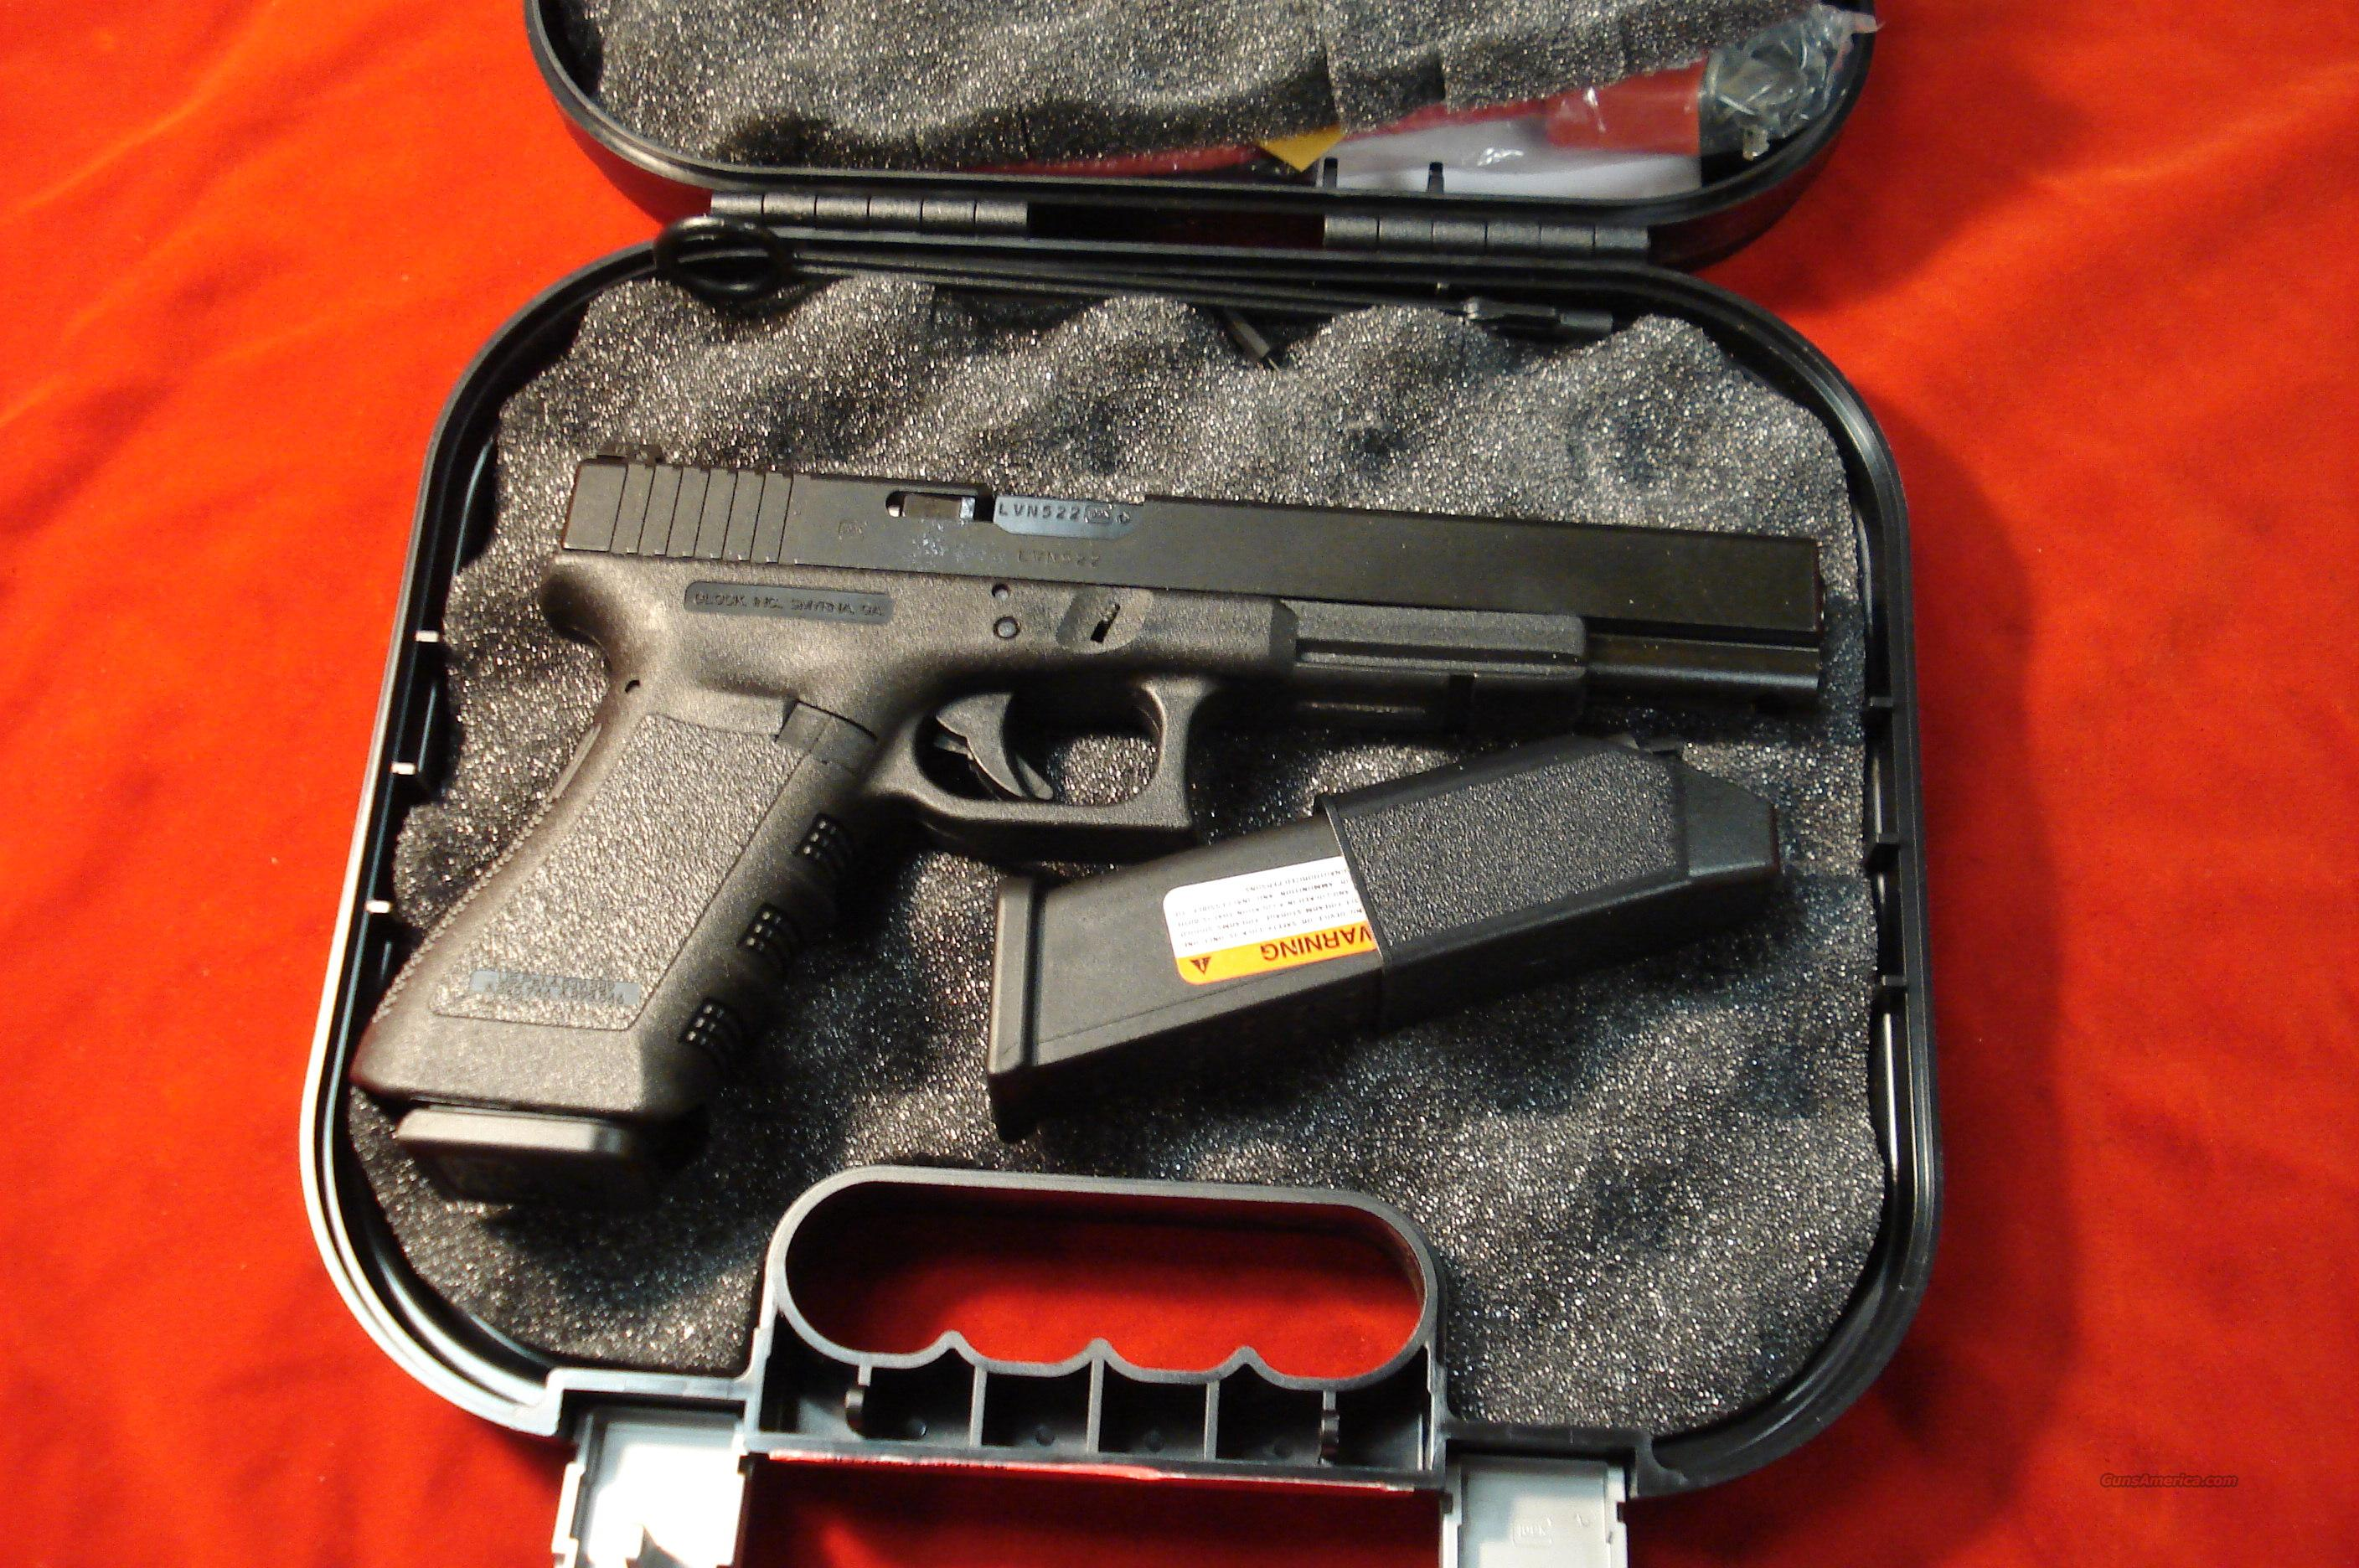 GLOCK MODEL 17L (LONG SLIDE) NEW  Guns > Pistols > Glock Pistols > 17